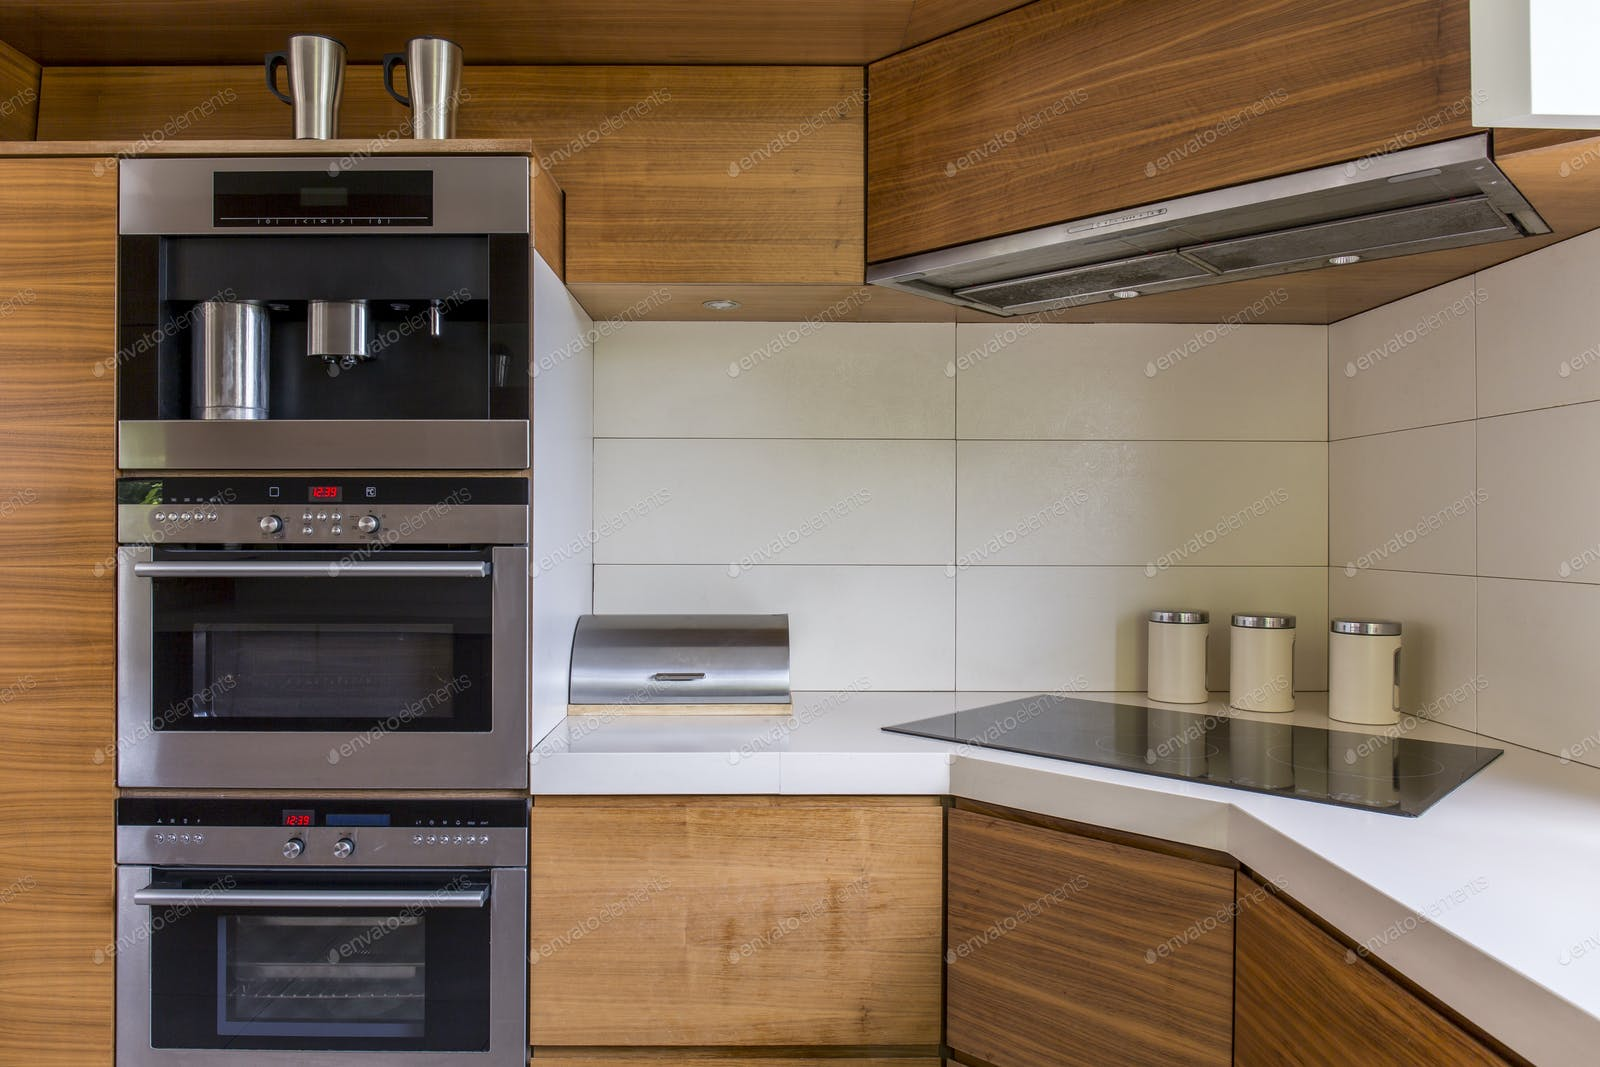 Modern Kitchenette With Wooden Furniture Photo By Bialasiewicz On Envato Elements